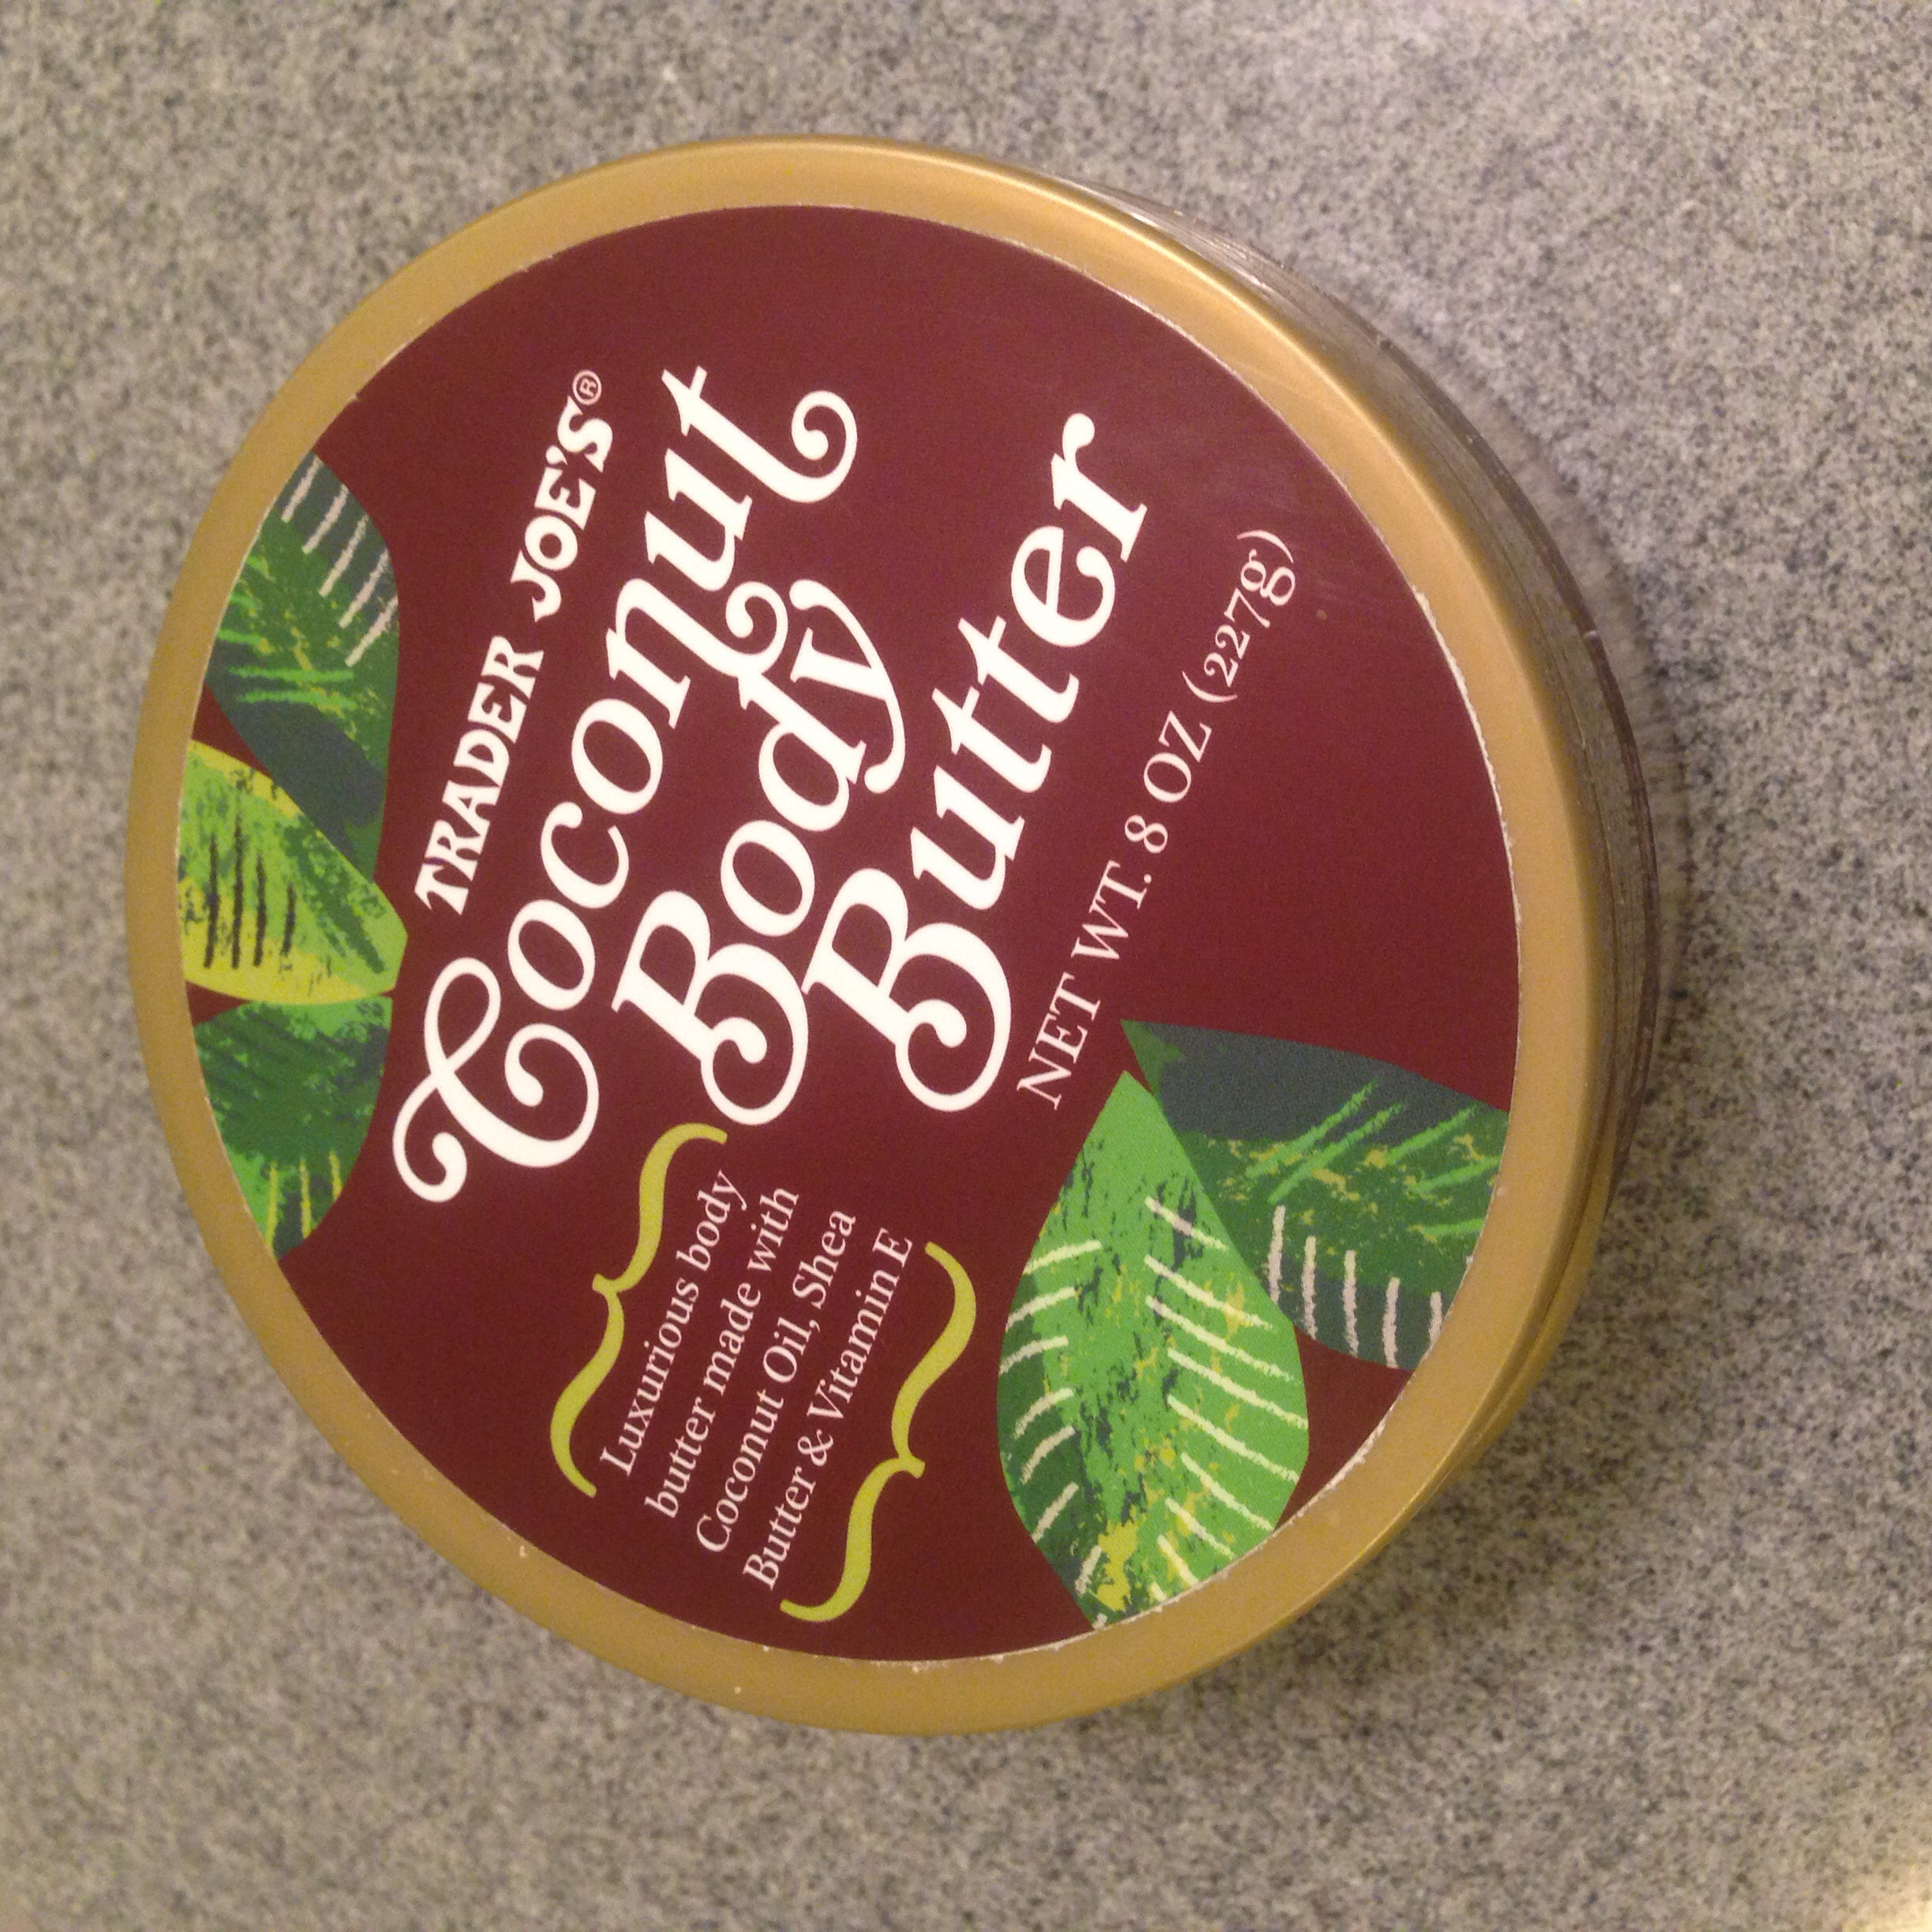 I used Trader Joe's Coconut Body Butter and didn't get any stretch marks during pregnancy